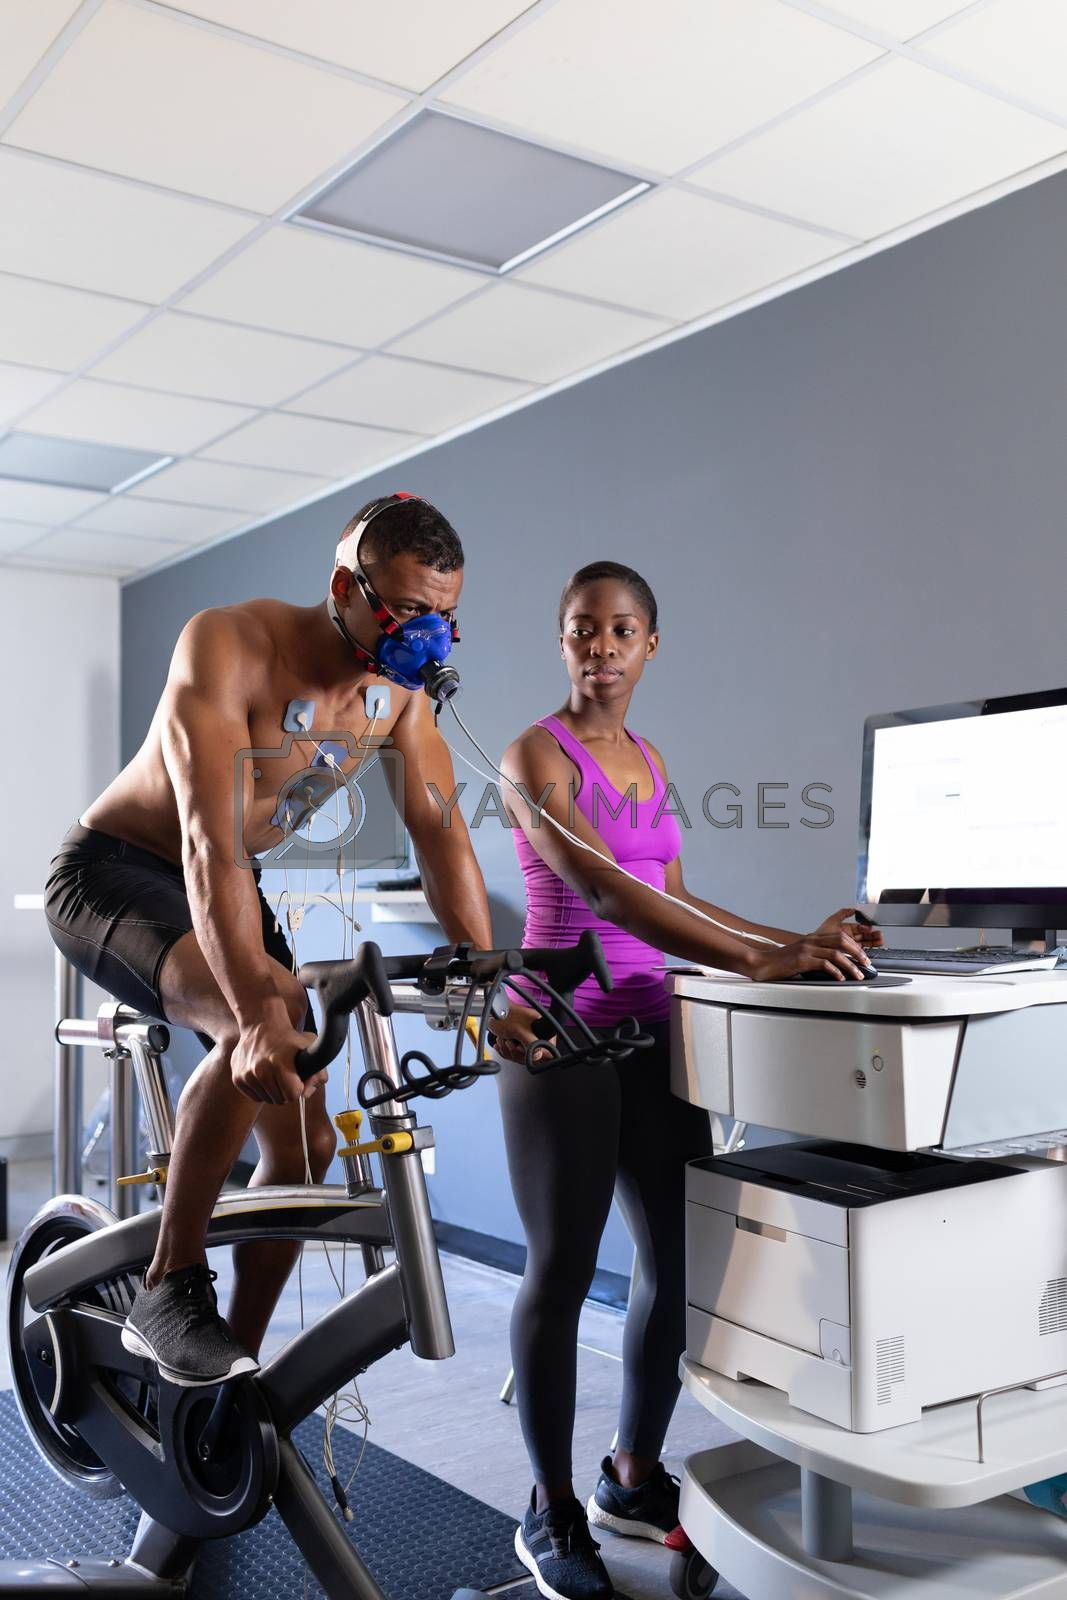 Side view of a naked African-American athletic man doing a fitness test using a mask connected to a monitor while riding an exercise bike and an African-American woman assisting him inside a room at a sports center. Bright modern gym with fit healthy people working out and training. Athlete testing themselves with cardiovascular fitness test on exercise bike